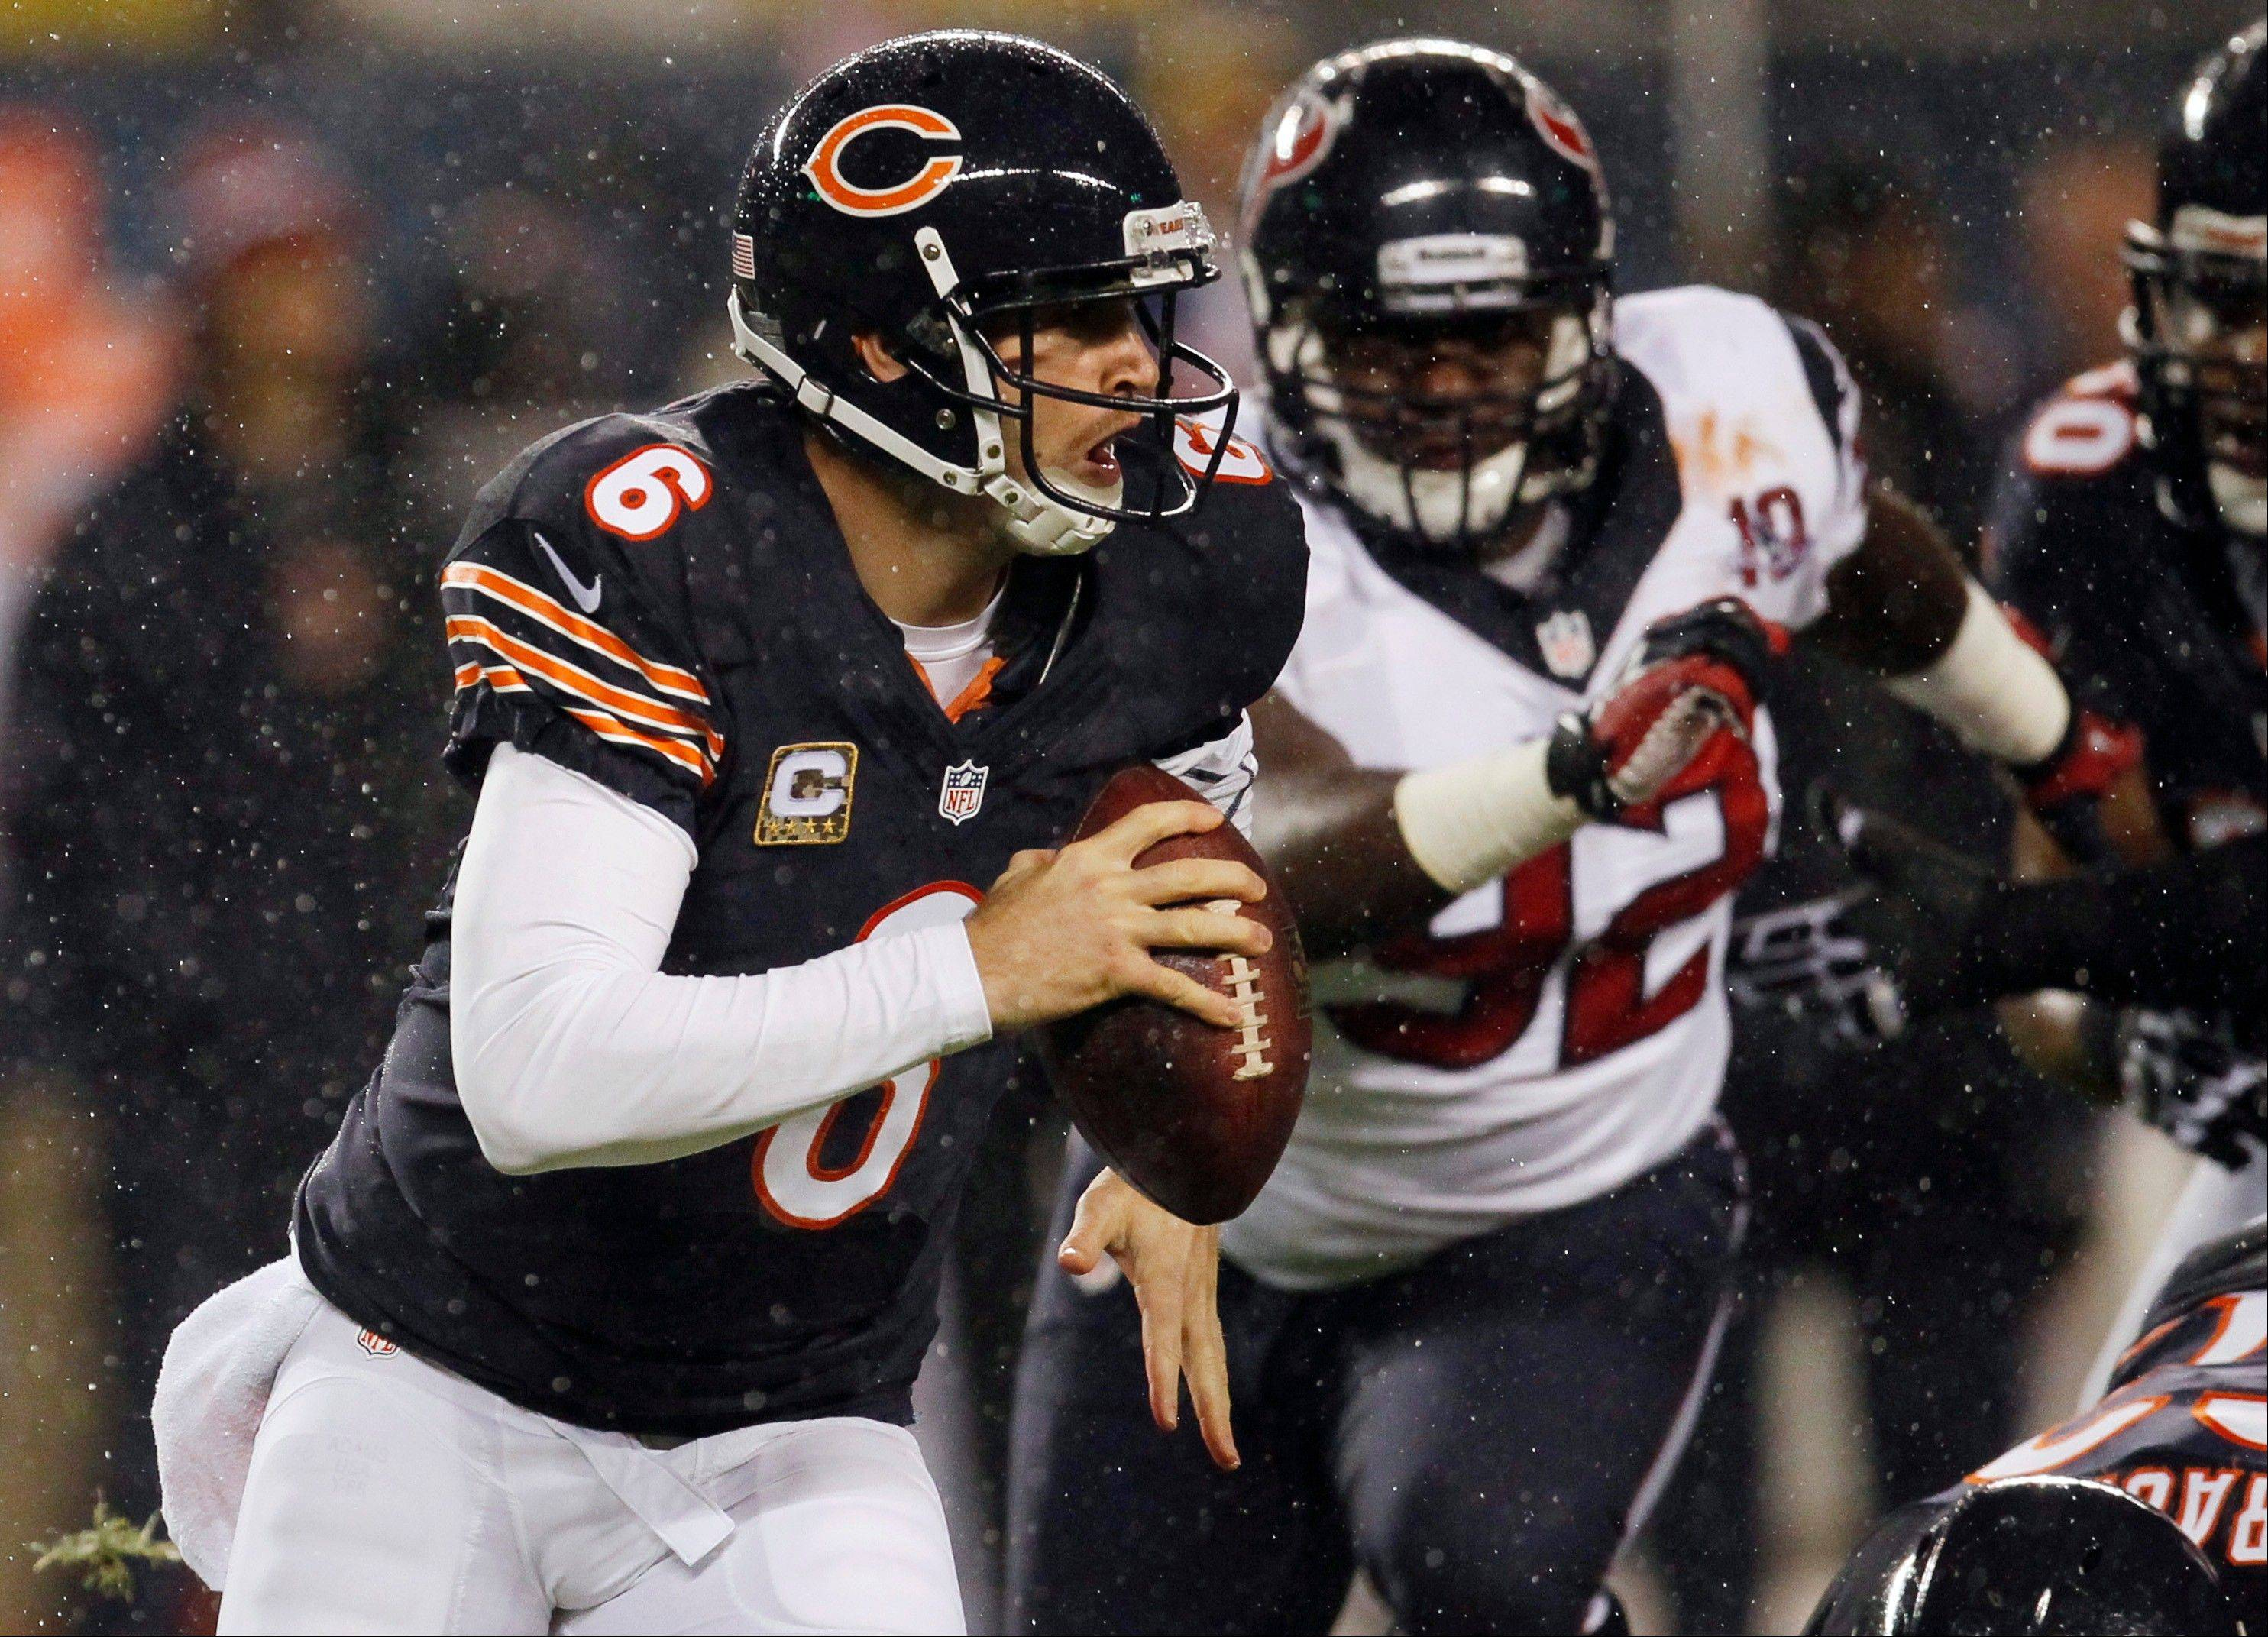 Chicago Bears quarterback Jay Cutler (6) scrambles away from Houston Texans defensive tackle Earl Mitchell (92) during the first half.